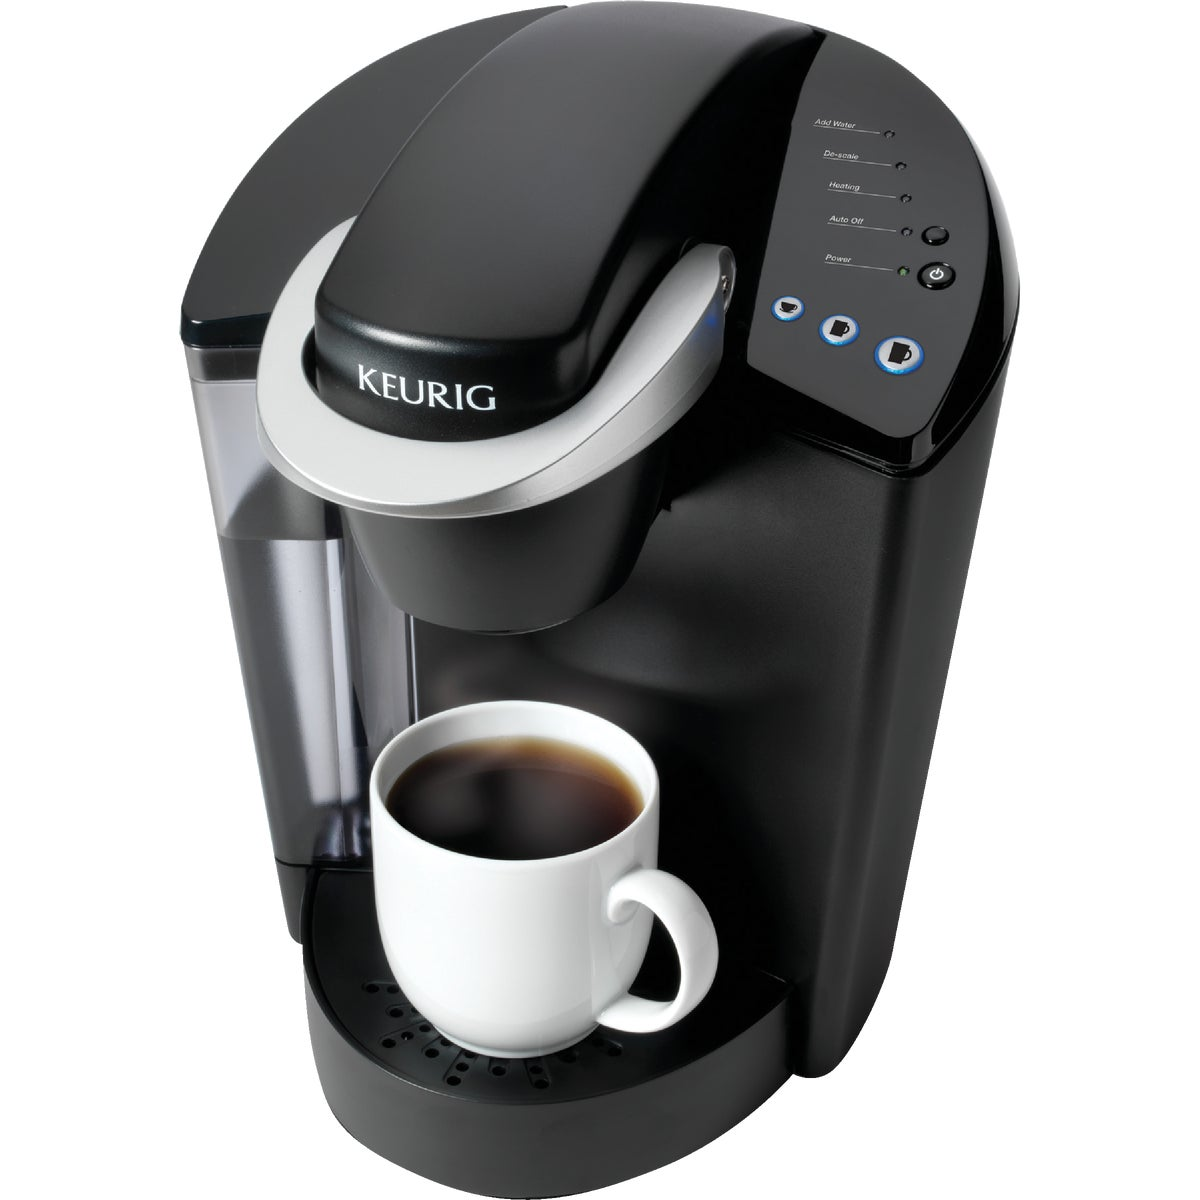 KEURIG K45 ELITE BREWER - 112276 by Keurig     M Block